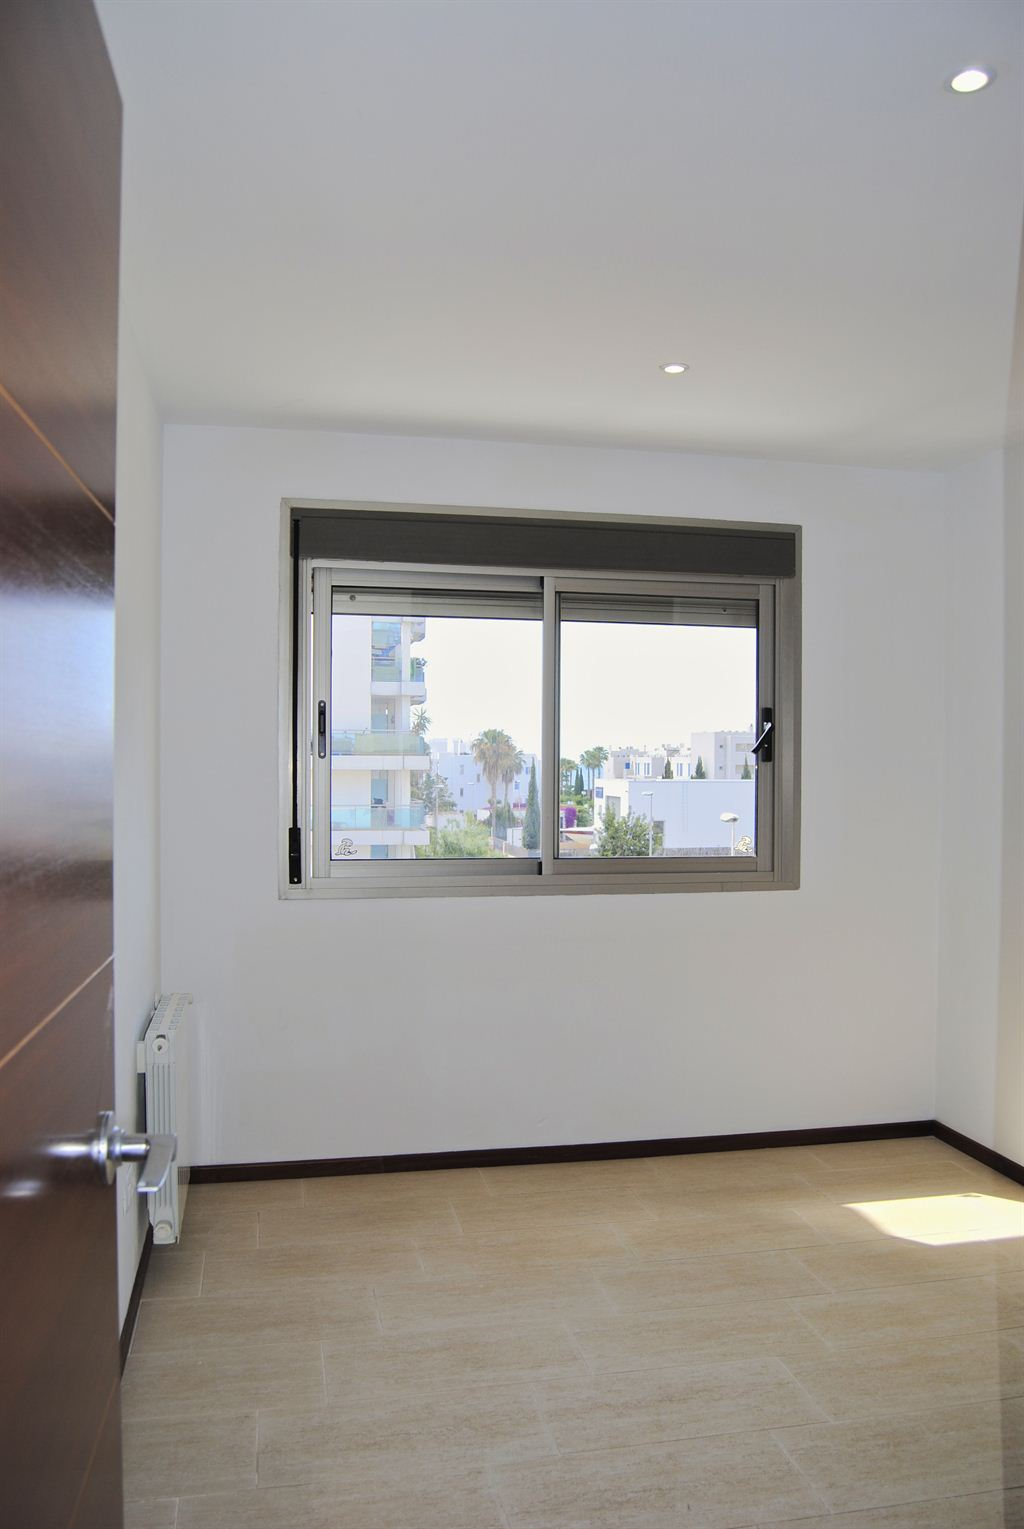 Penthouse in perfect condition close to the beach in Santa Eulalia with partial sea view